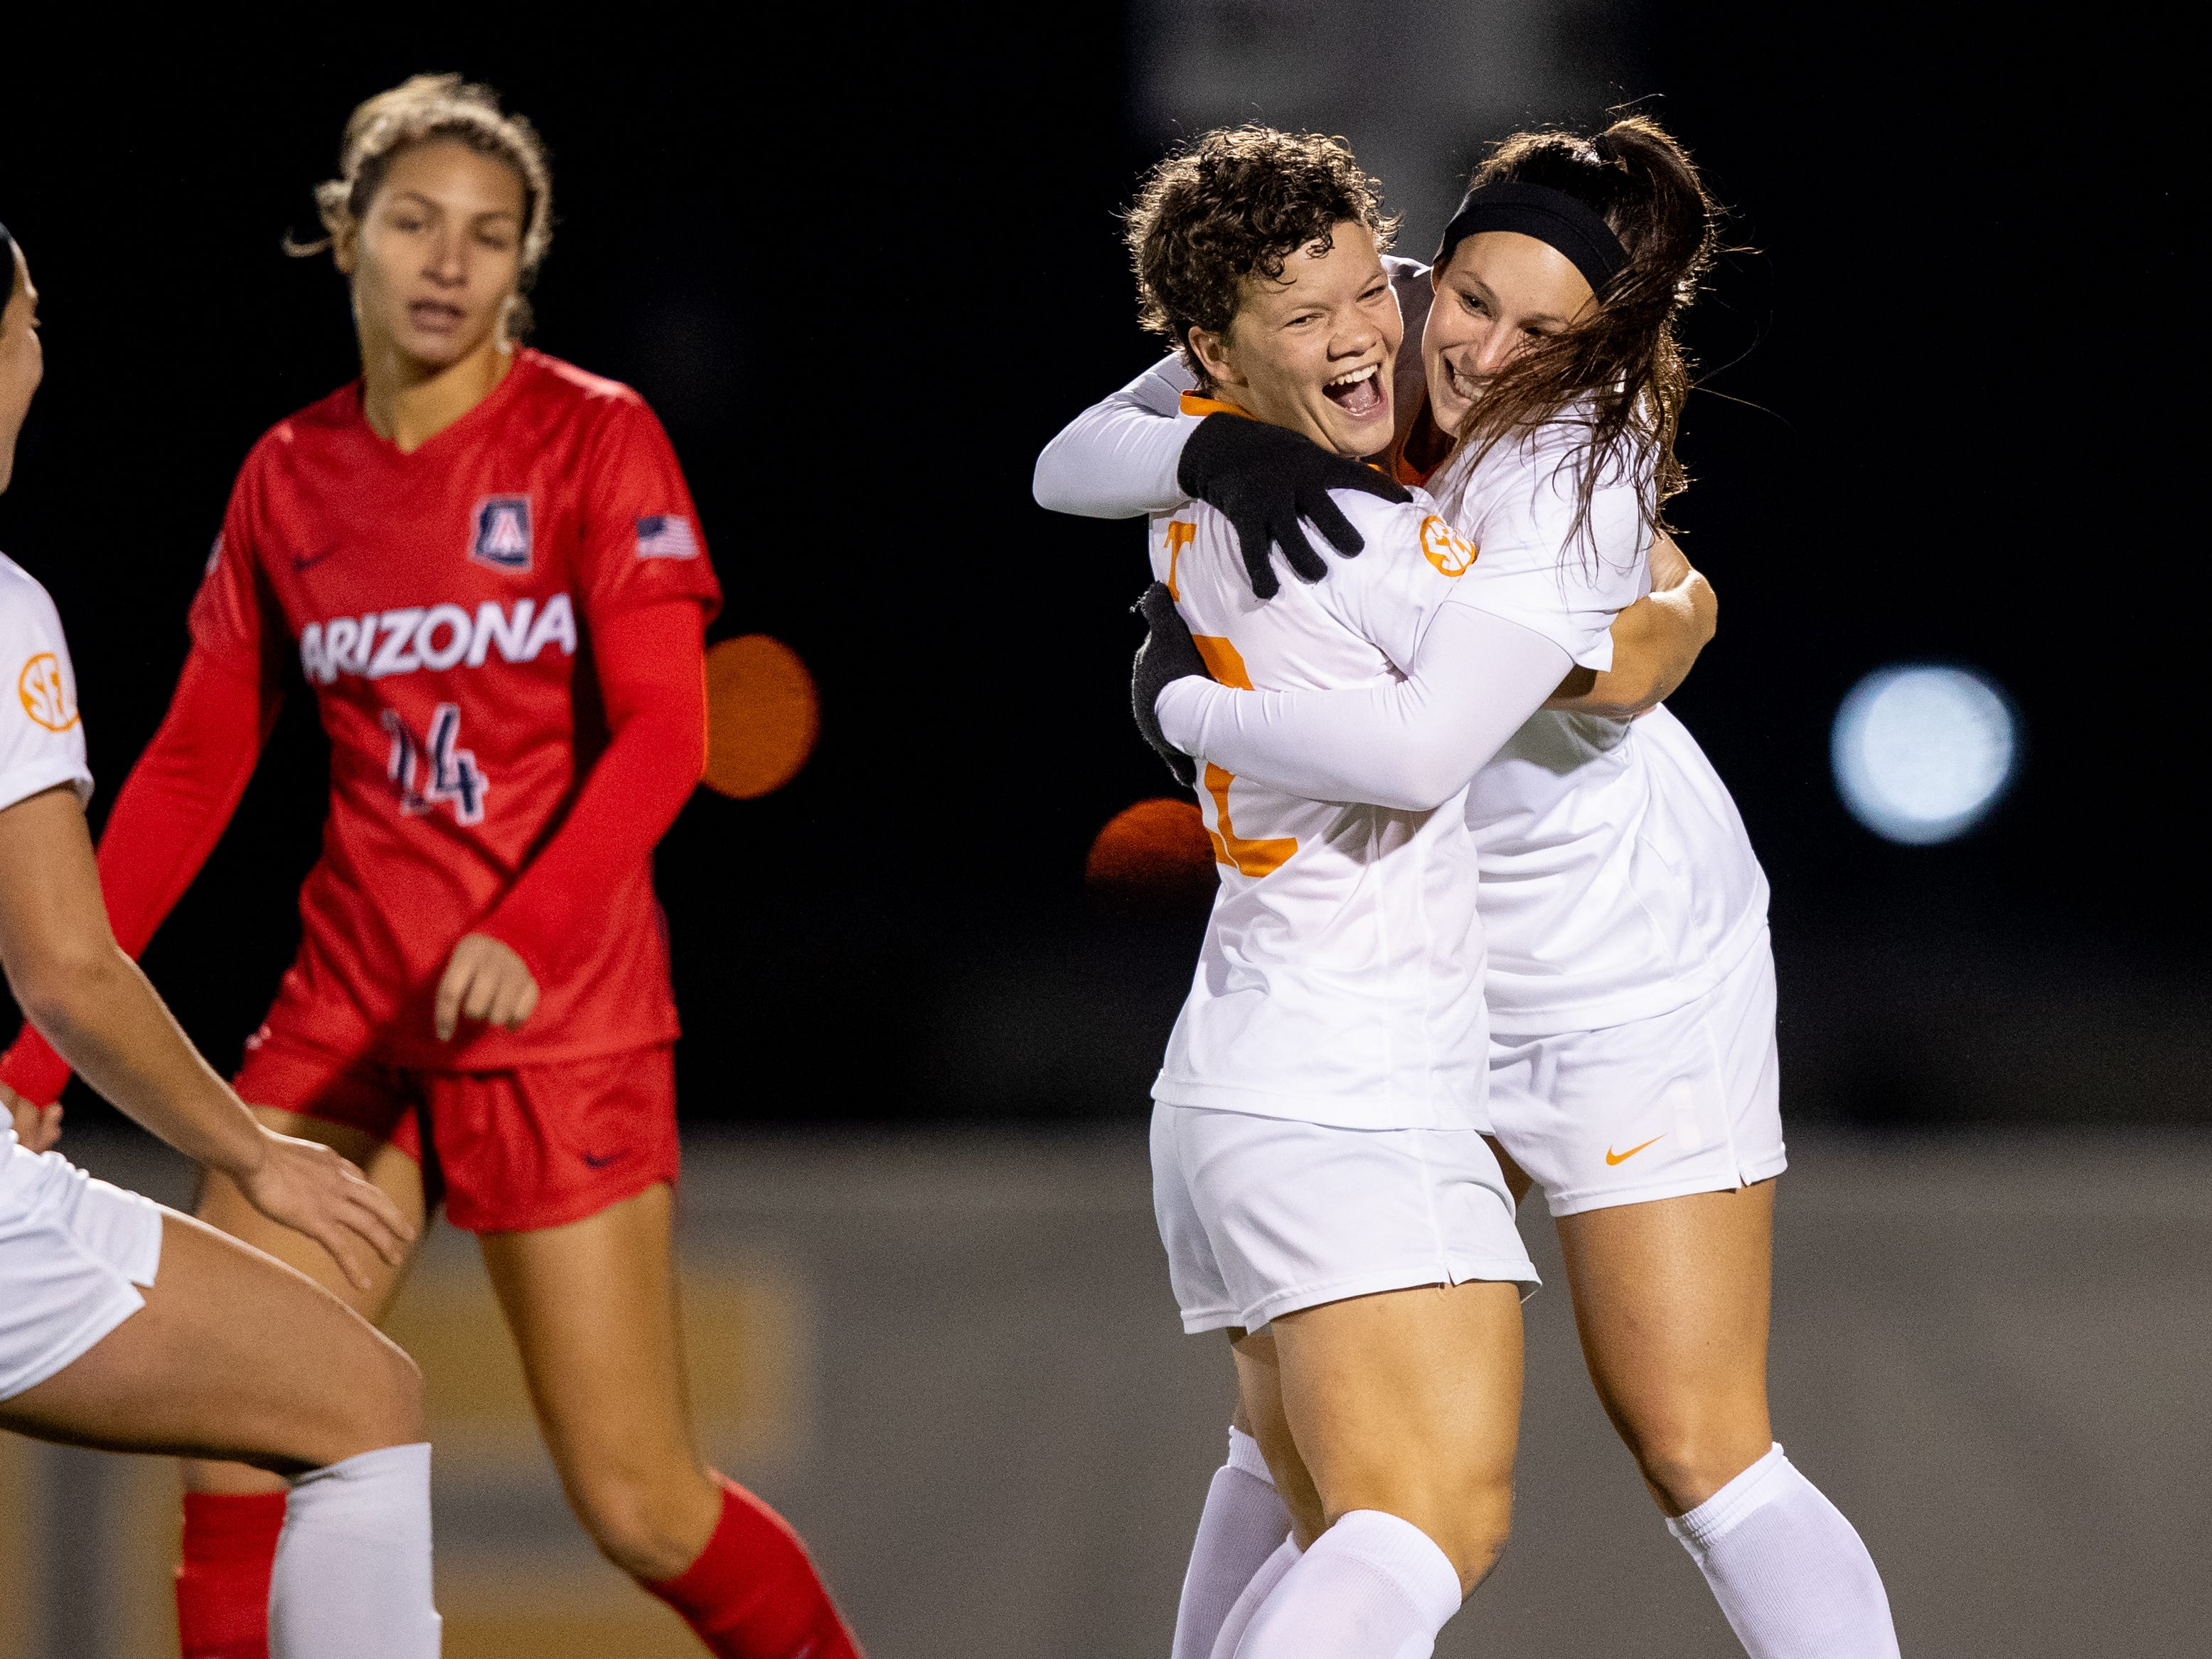 Katie Cousins, left, congratulates Danielle Marcano after she scored the game-winning goal to lift Tennessee to a 3-2 win over Arizona in the second round of the NCAA women's soccer tournament at Regal Stadium in Knoxville, Tenn., on Nov. 16, 2018.